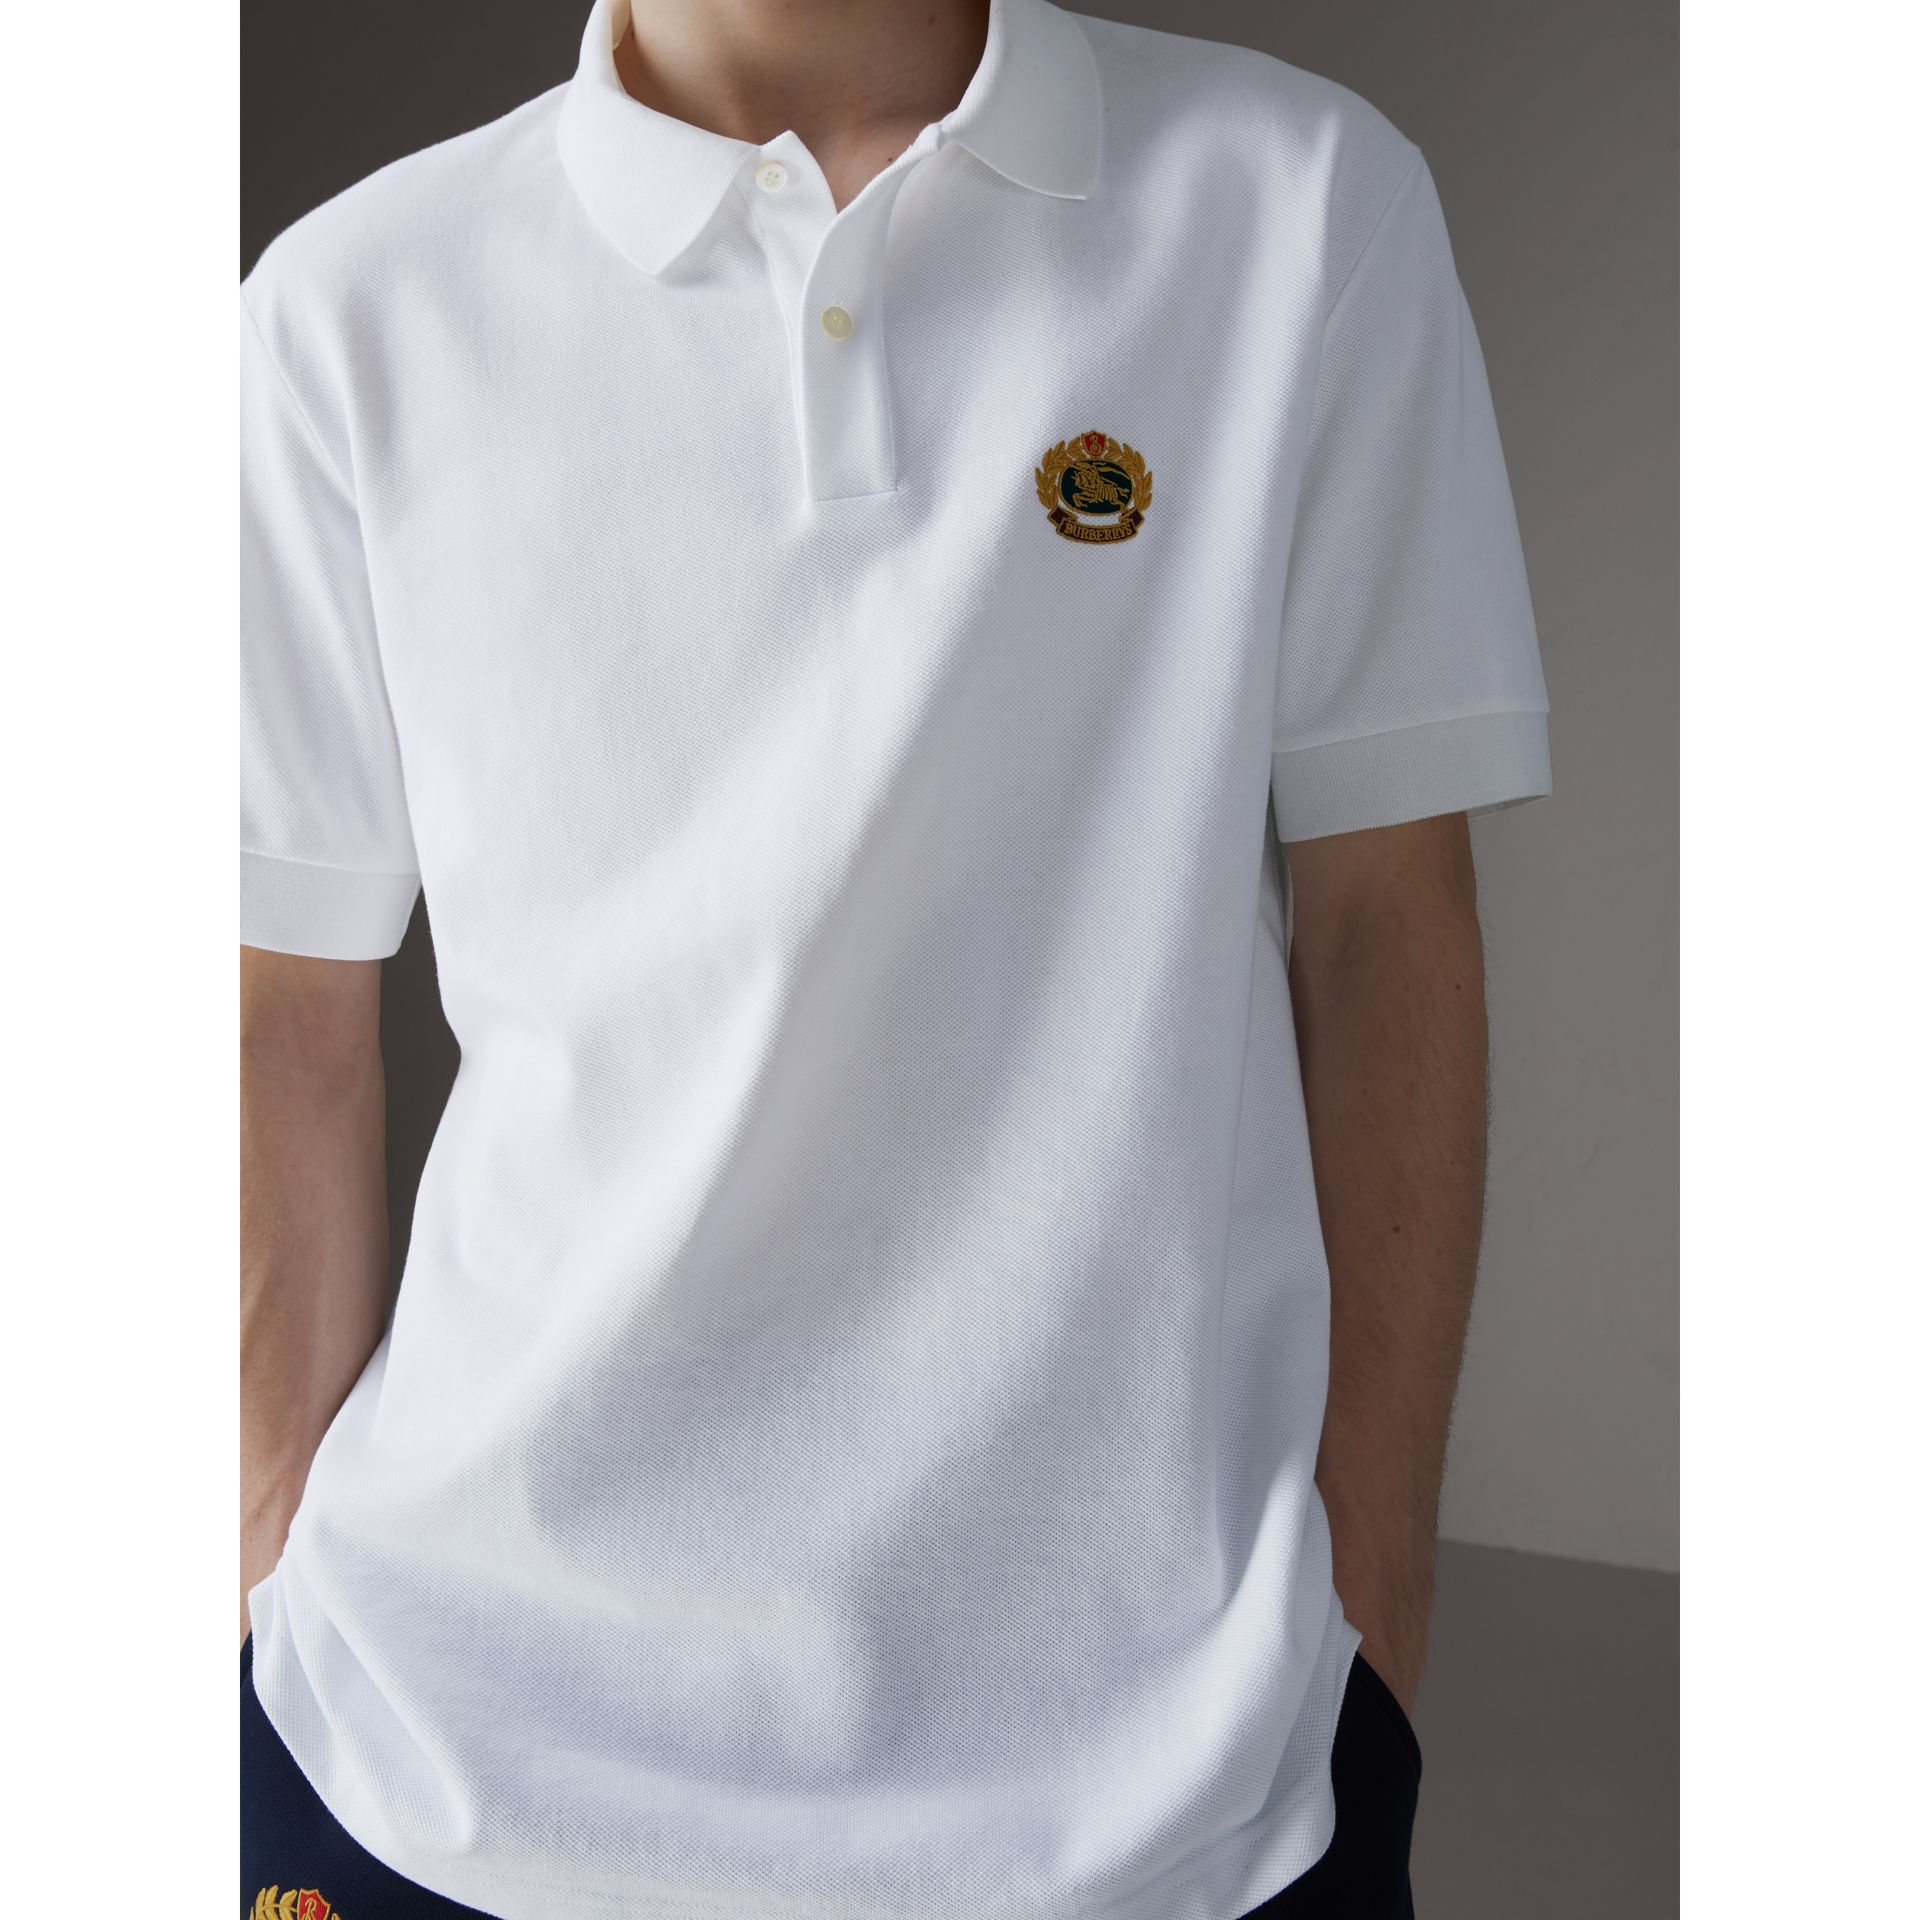 8eff5358f Reissued Cotton Polo Shirt. £220. Sorry, this item has just gone out of  stock. Our stylists will find you something similar if you sign up for  Thread.